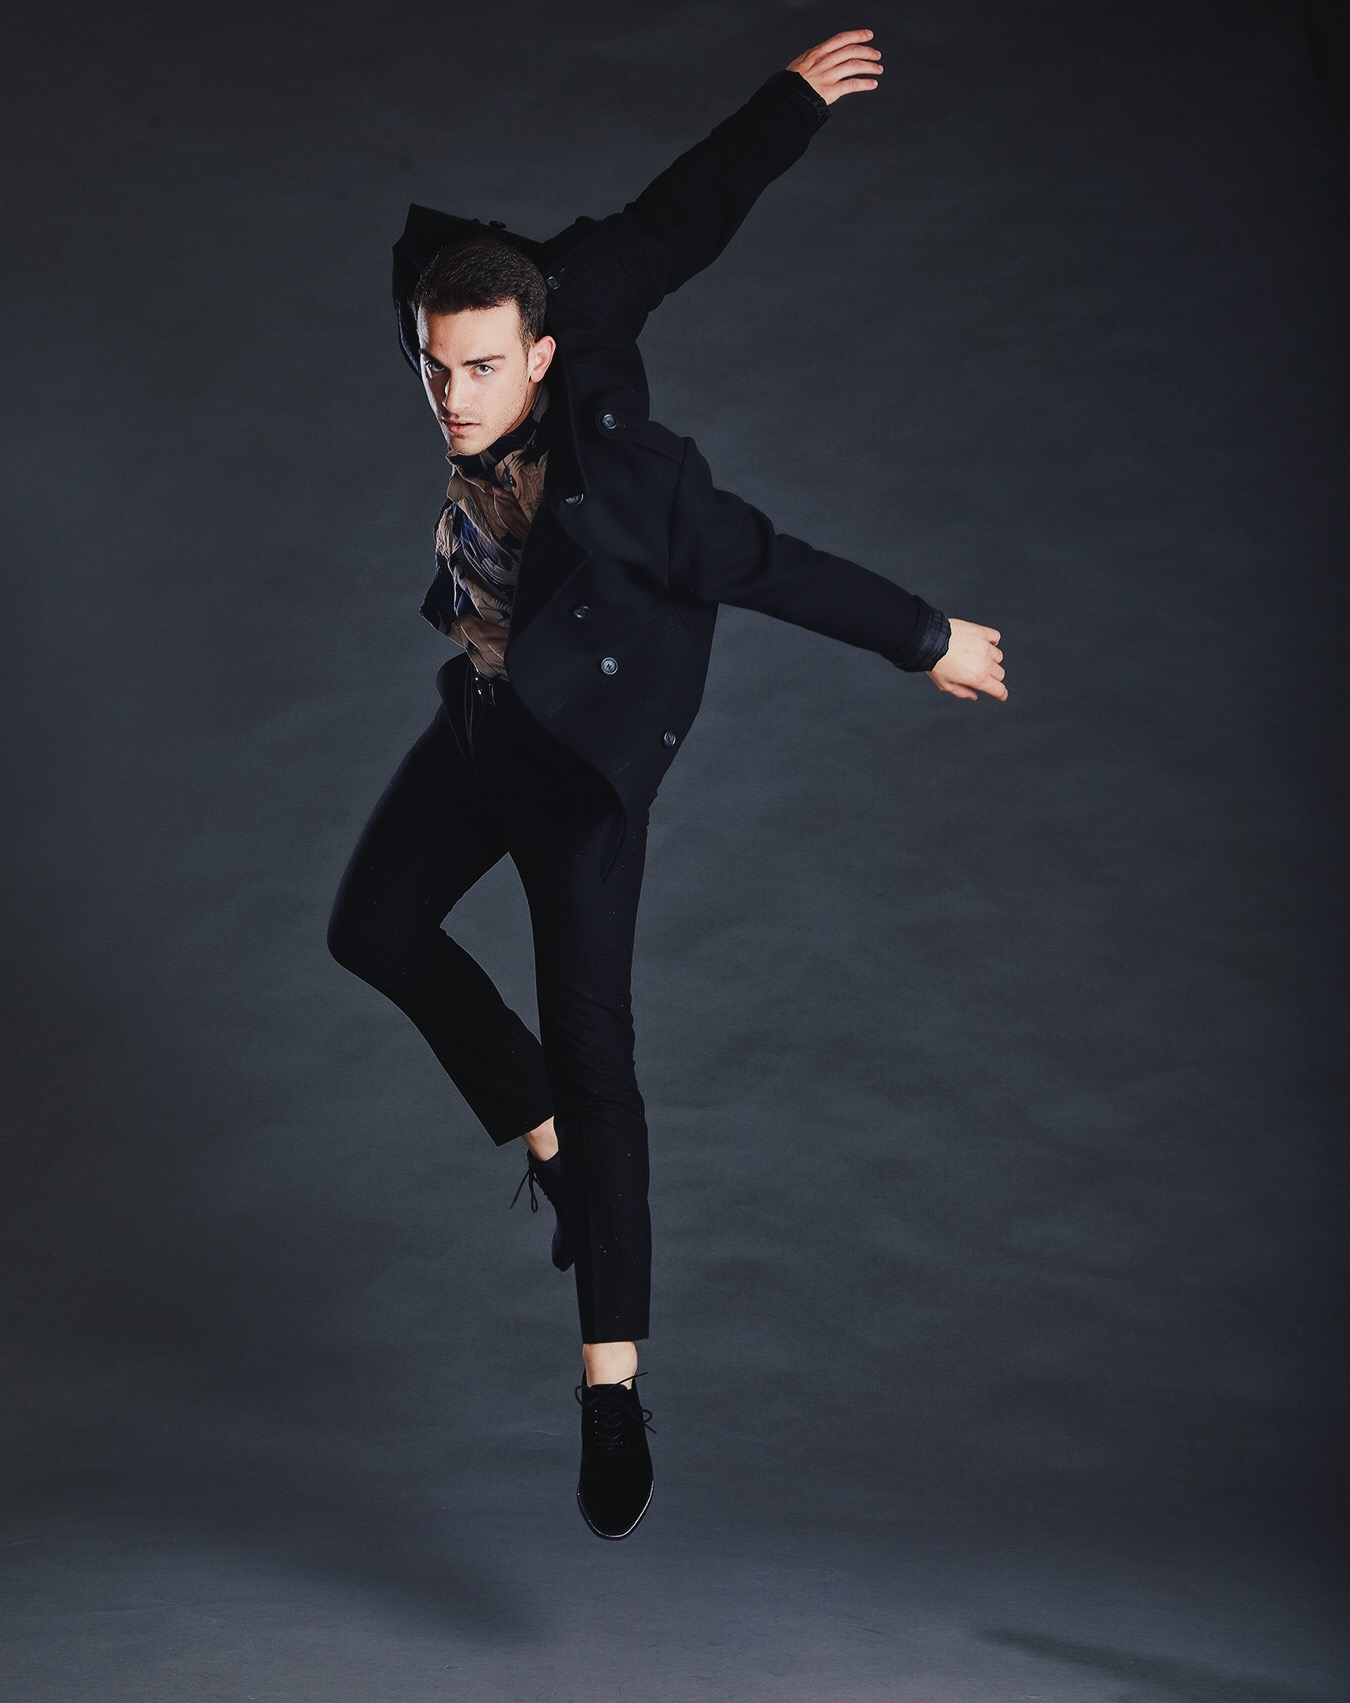 JP STANLEY - INSTRUCTORJP Stanley is a multifaceted dancer and wonderful instructor that challenges  his students to dig deep  in his contemporary classes.